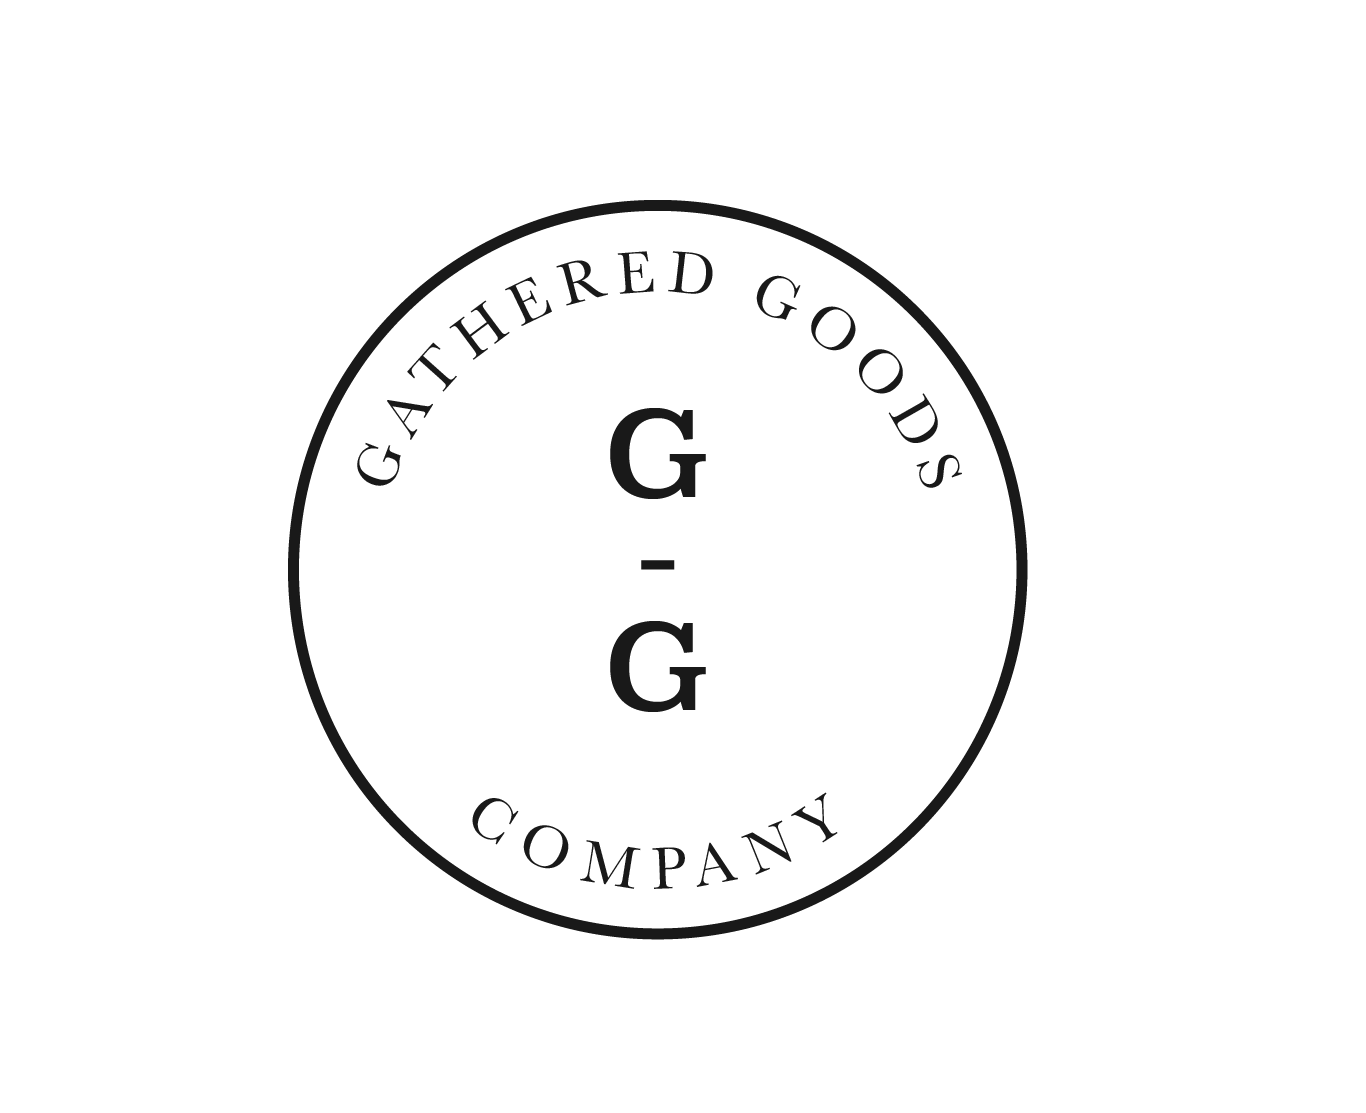 Gathered Goods Company